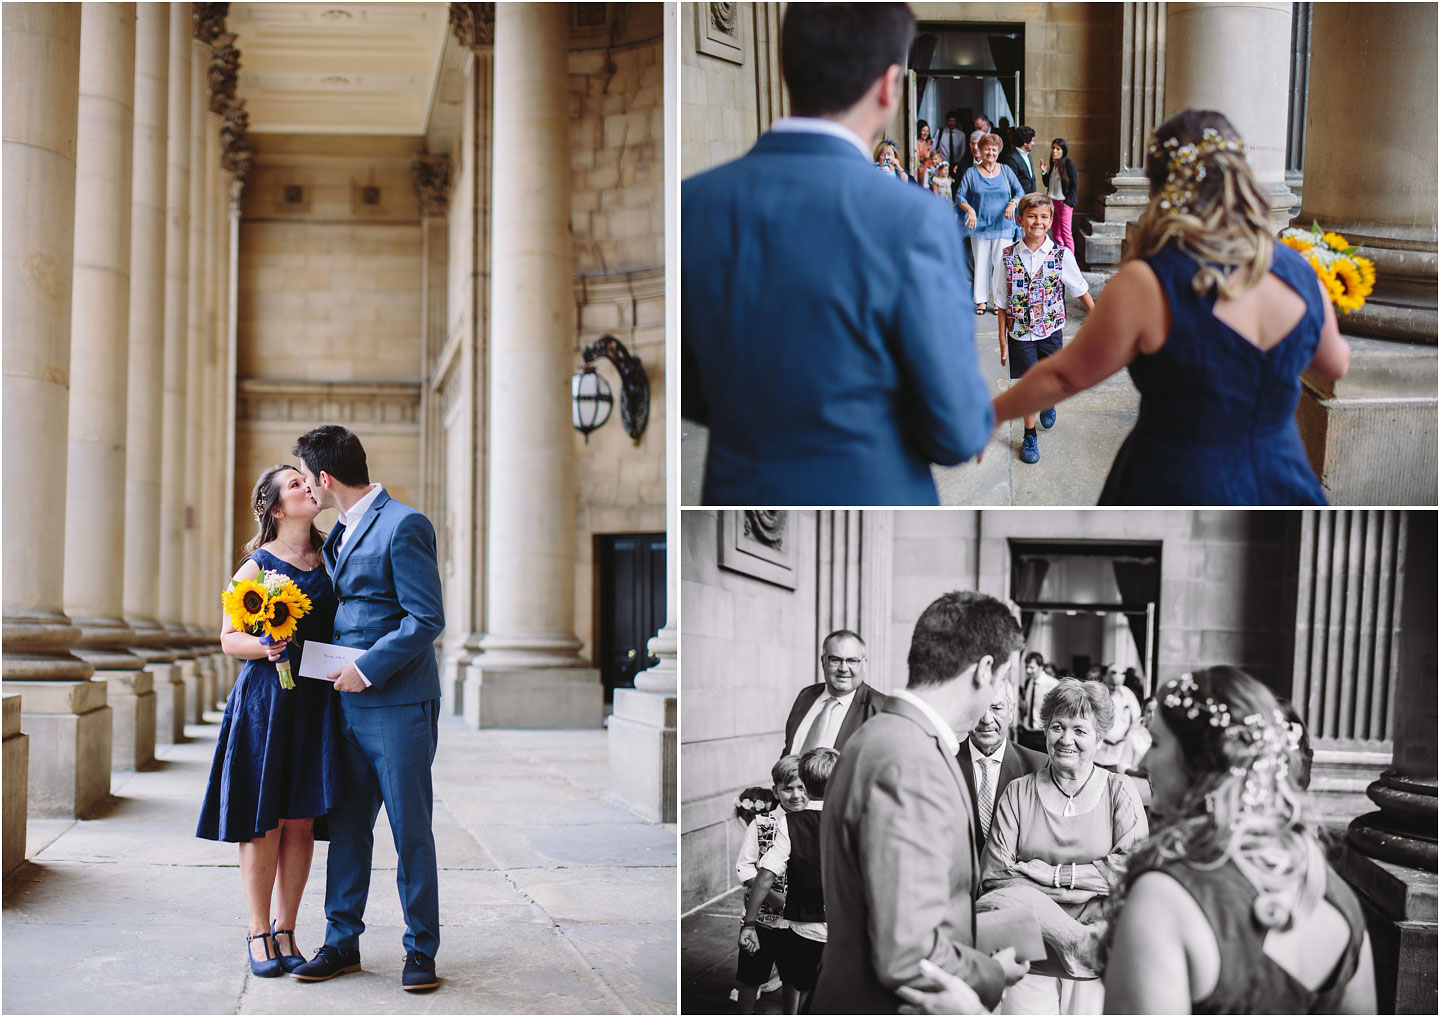 Civil ceremony Photographs at Leeds Town Hall